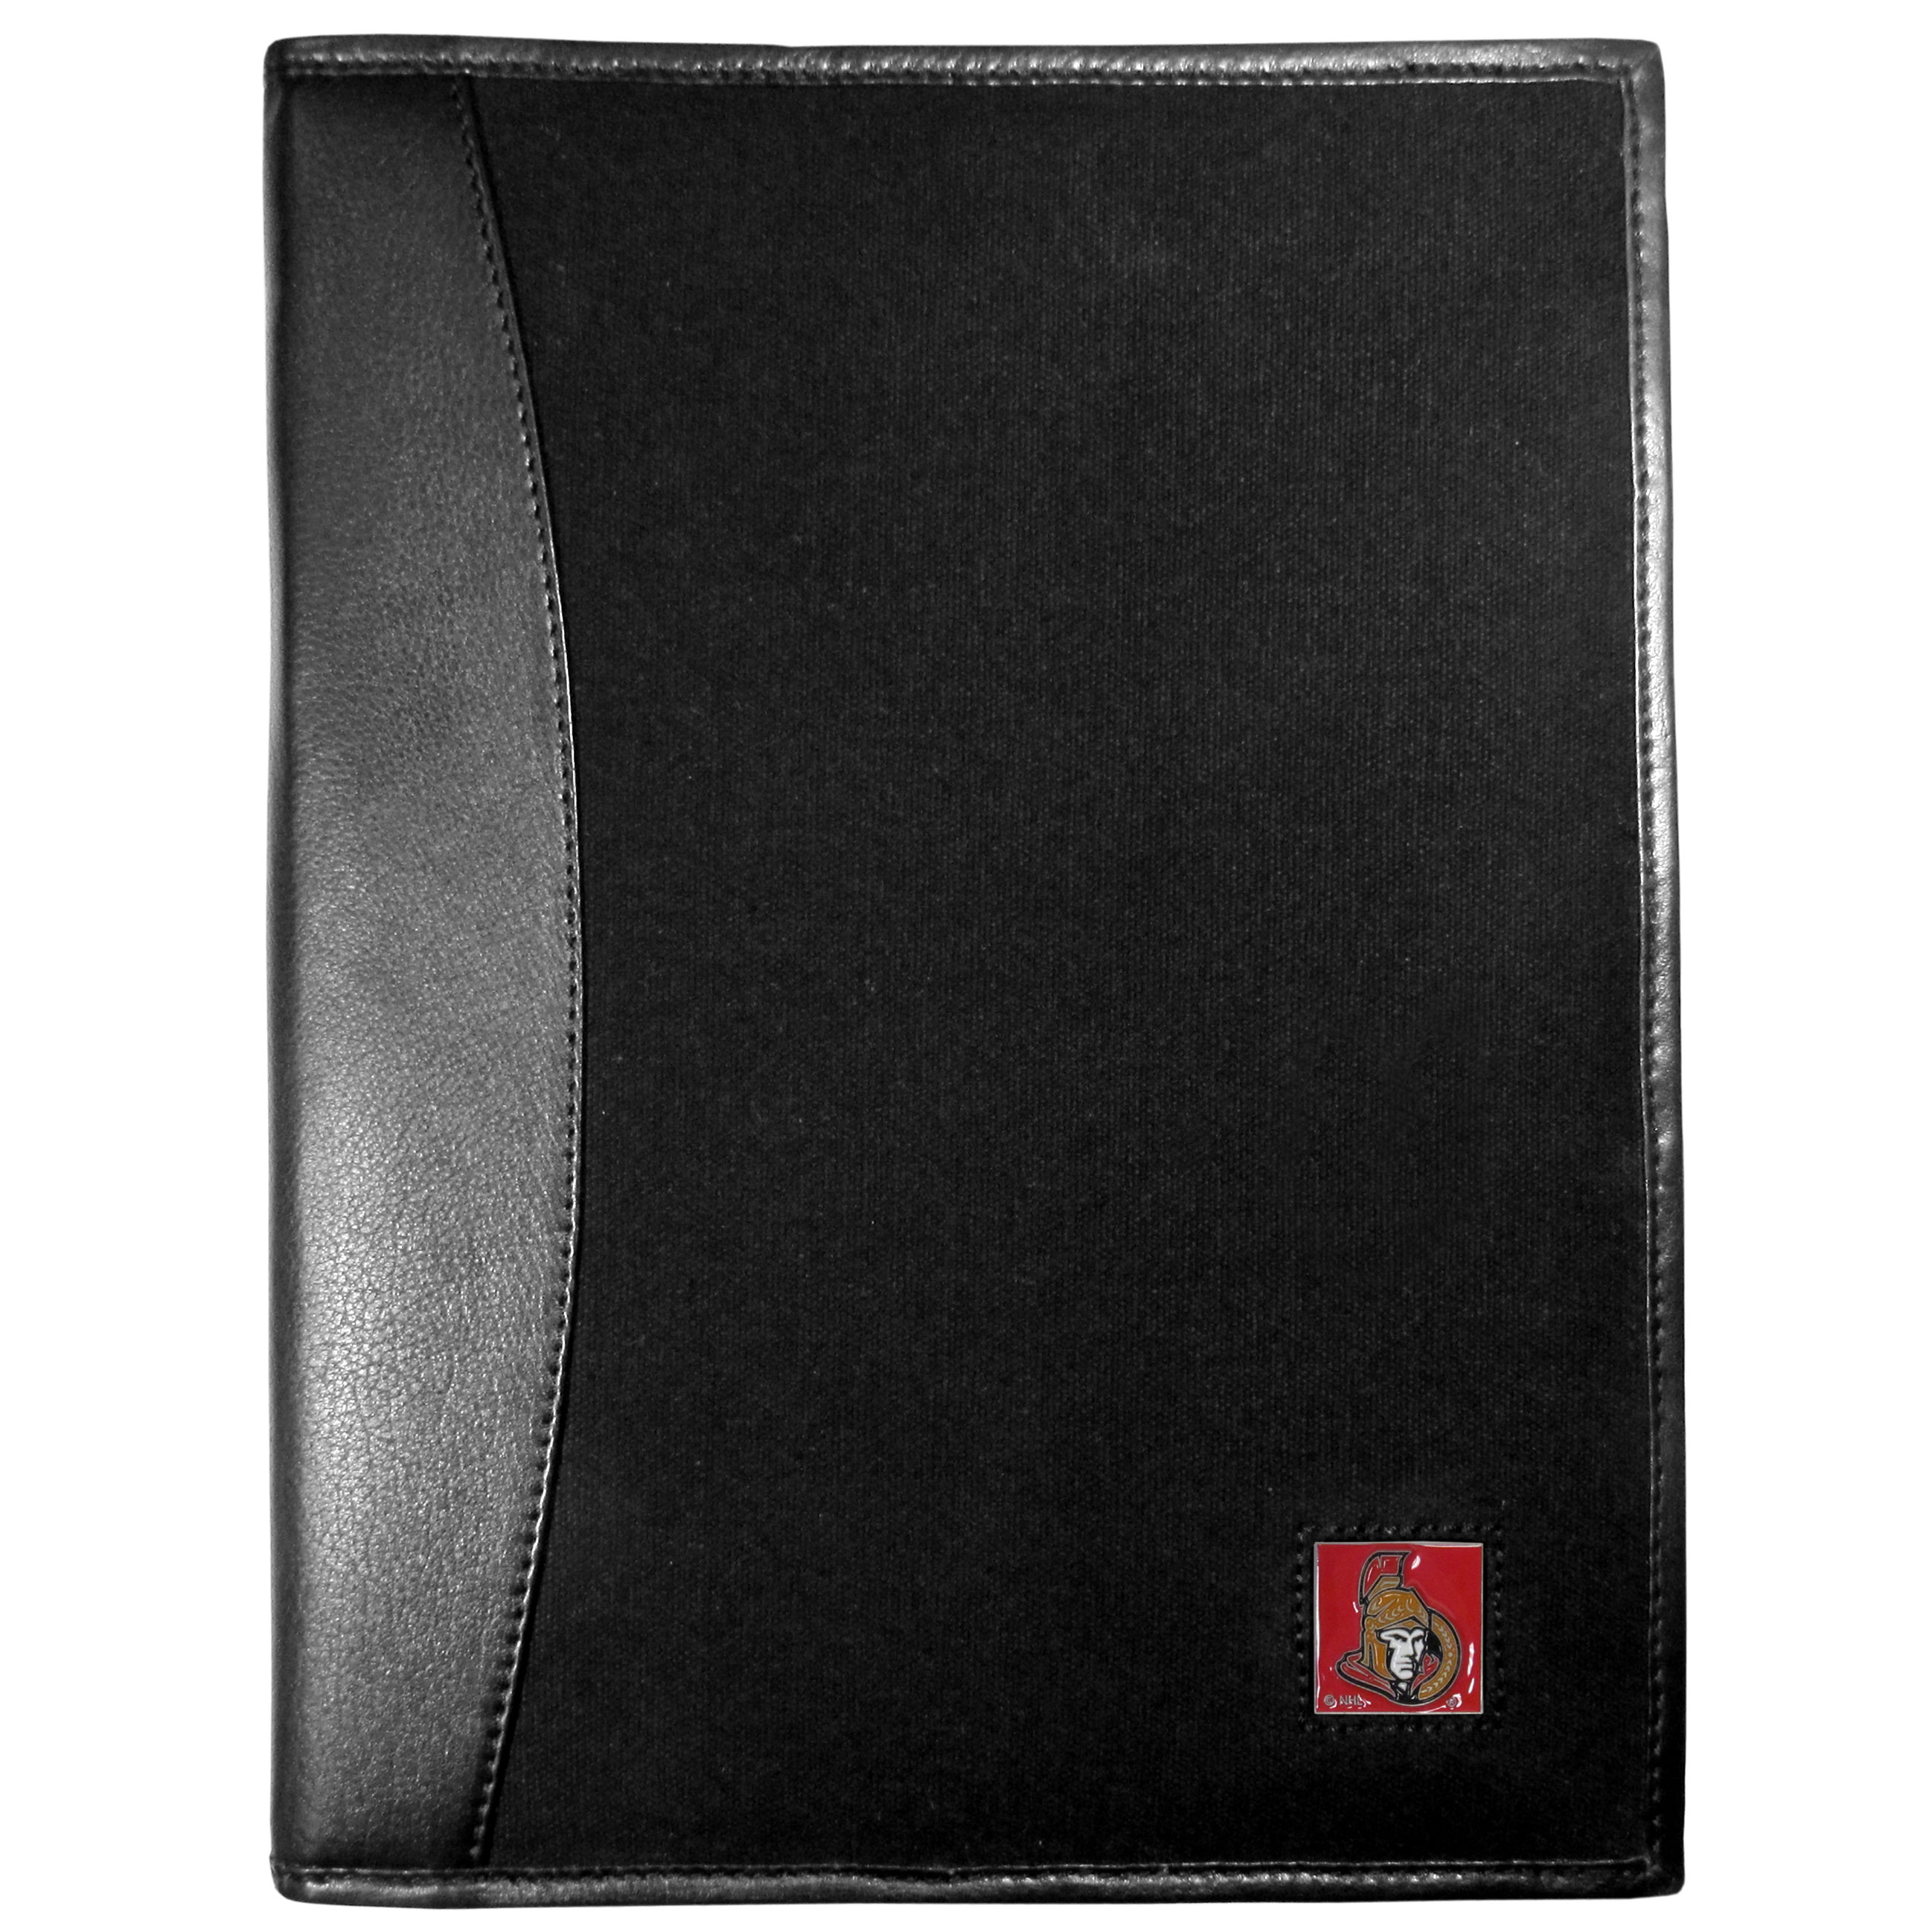 Ottawa Senators® Leather and Canvas Padfolio - Our leather and canvas padfolio perfectly blends form and function. The attractive portfolio is bound in fine grain leather with an attractive canvas finish and the interior is a soft nylon. This high quality business accessory also features a fully cast metal Ottawa Senators® emblem that is subtly set in the corner of the organizer. It is packed with features like 6 card slots for badges, business cards, hotel keys or credit cards and ID with a large pocket for loose papers and a writing tablet slot making it a must-have for the professional on the go.